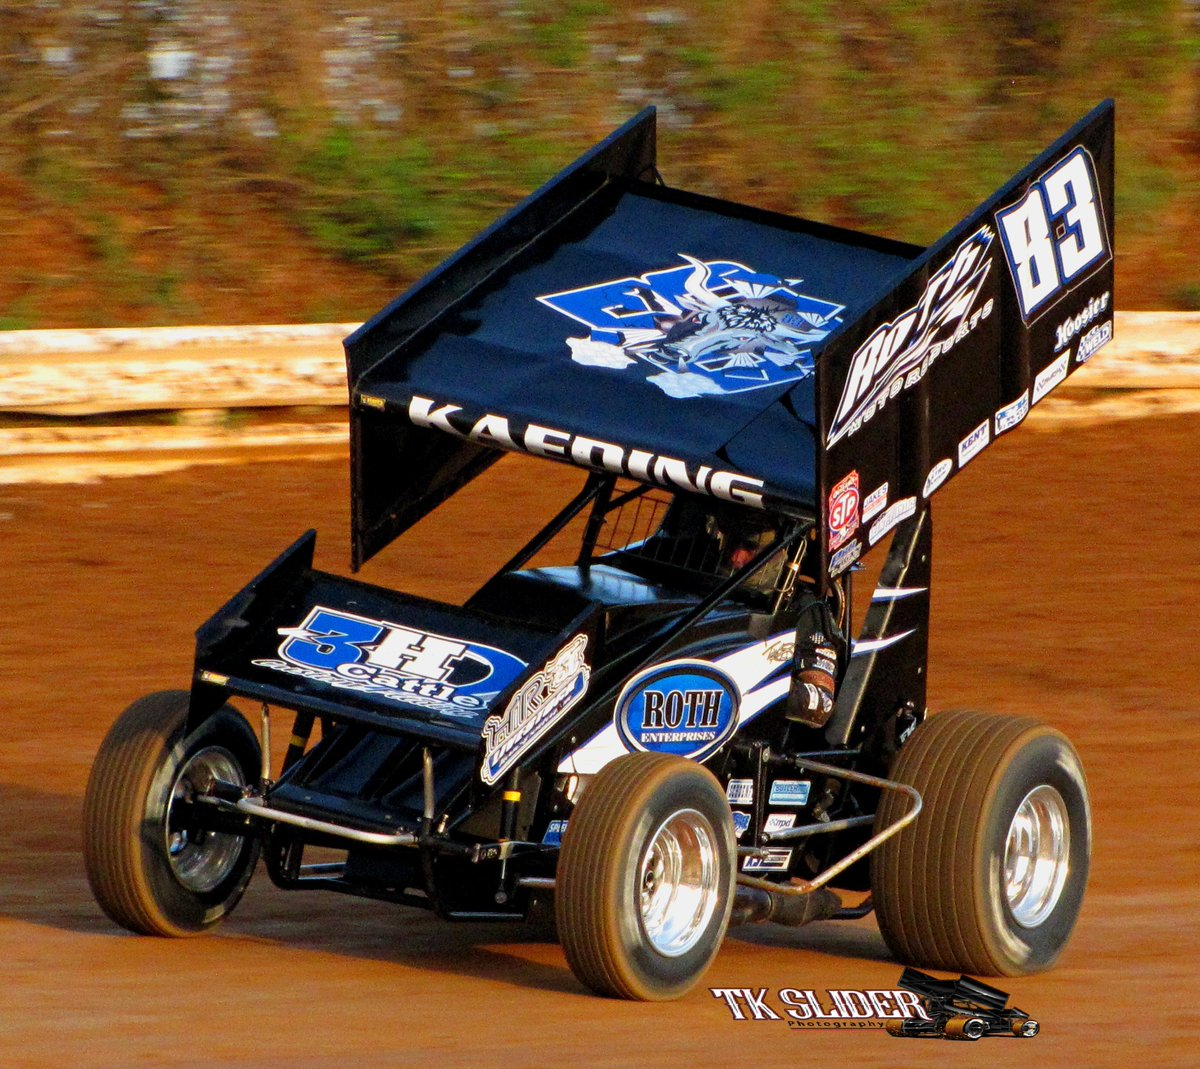 """#PhotooftheDay """"TK"""" in the Roth Motorsports 83 from 2013 pic.twitter.com/UUvpqunhXK"""